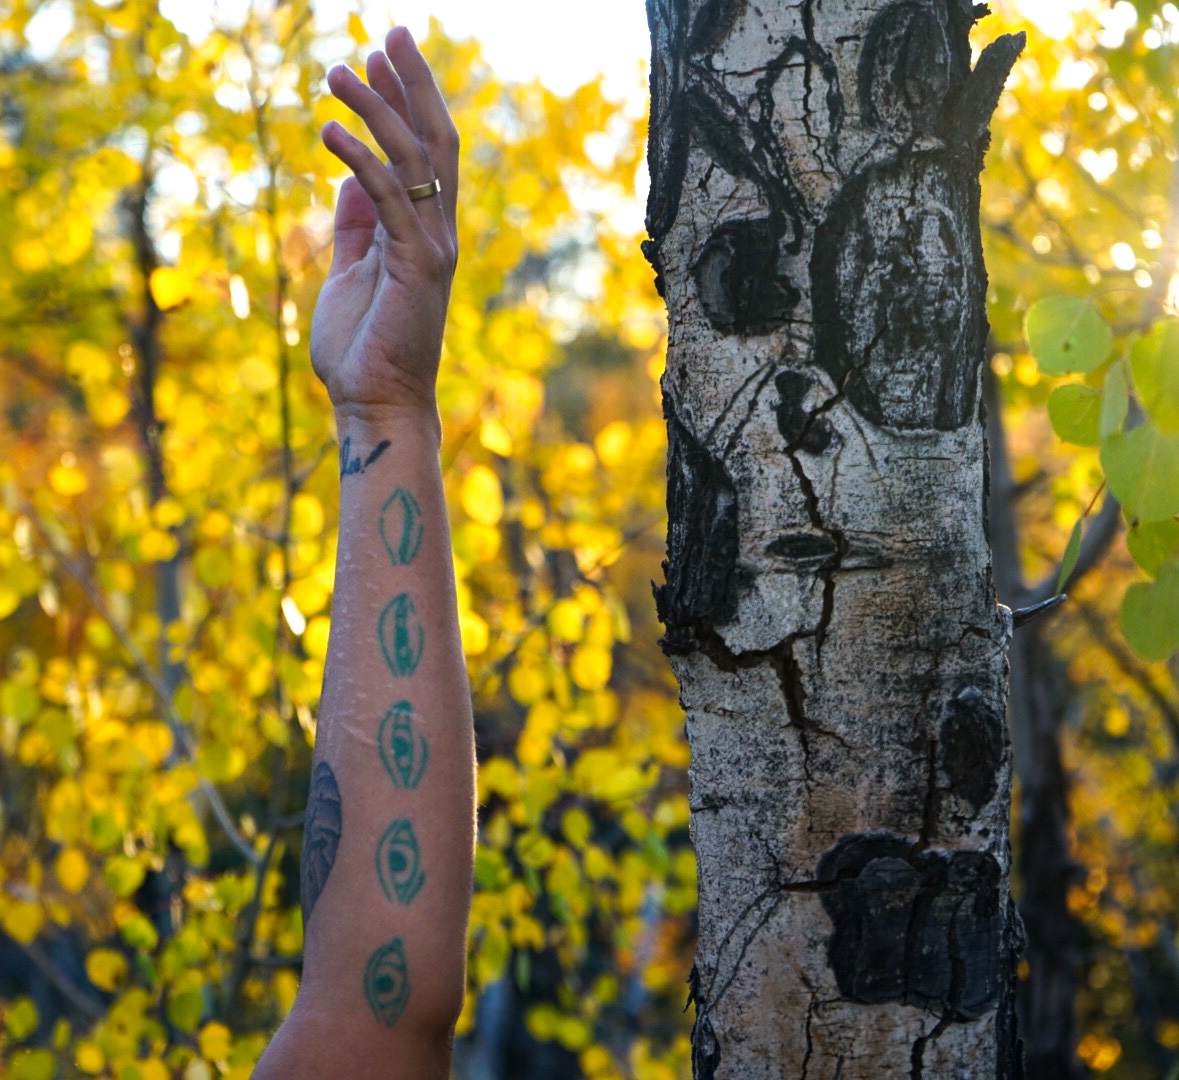 My homeland is liminality.    Etched across my body in scars is a map Home.    Motherland from the Andes and China; fatherland from the Altai mountains.    Hybridity is a maddening gift of confluence,    Landscapes simultaneously longing and being longed for across continents.